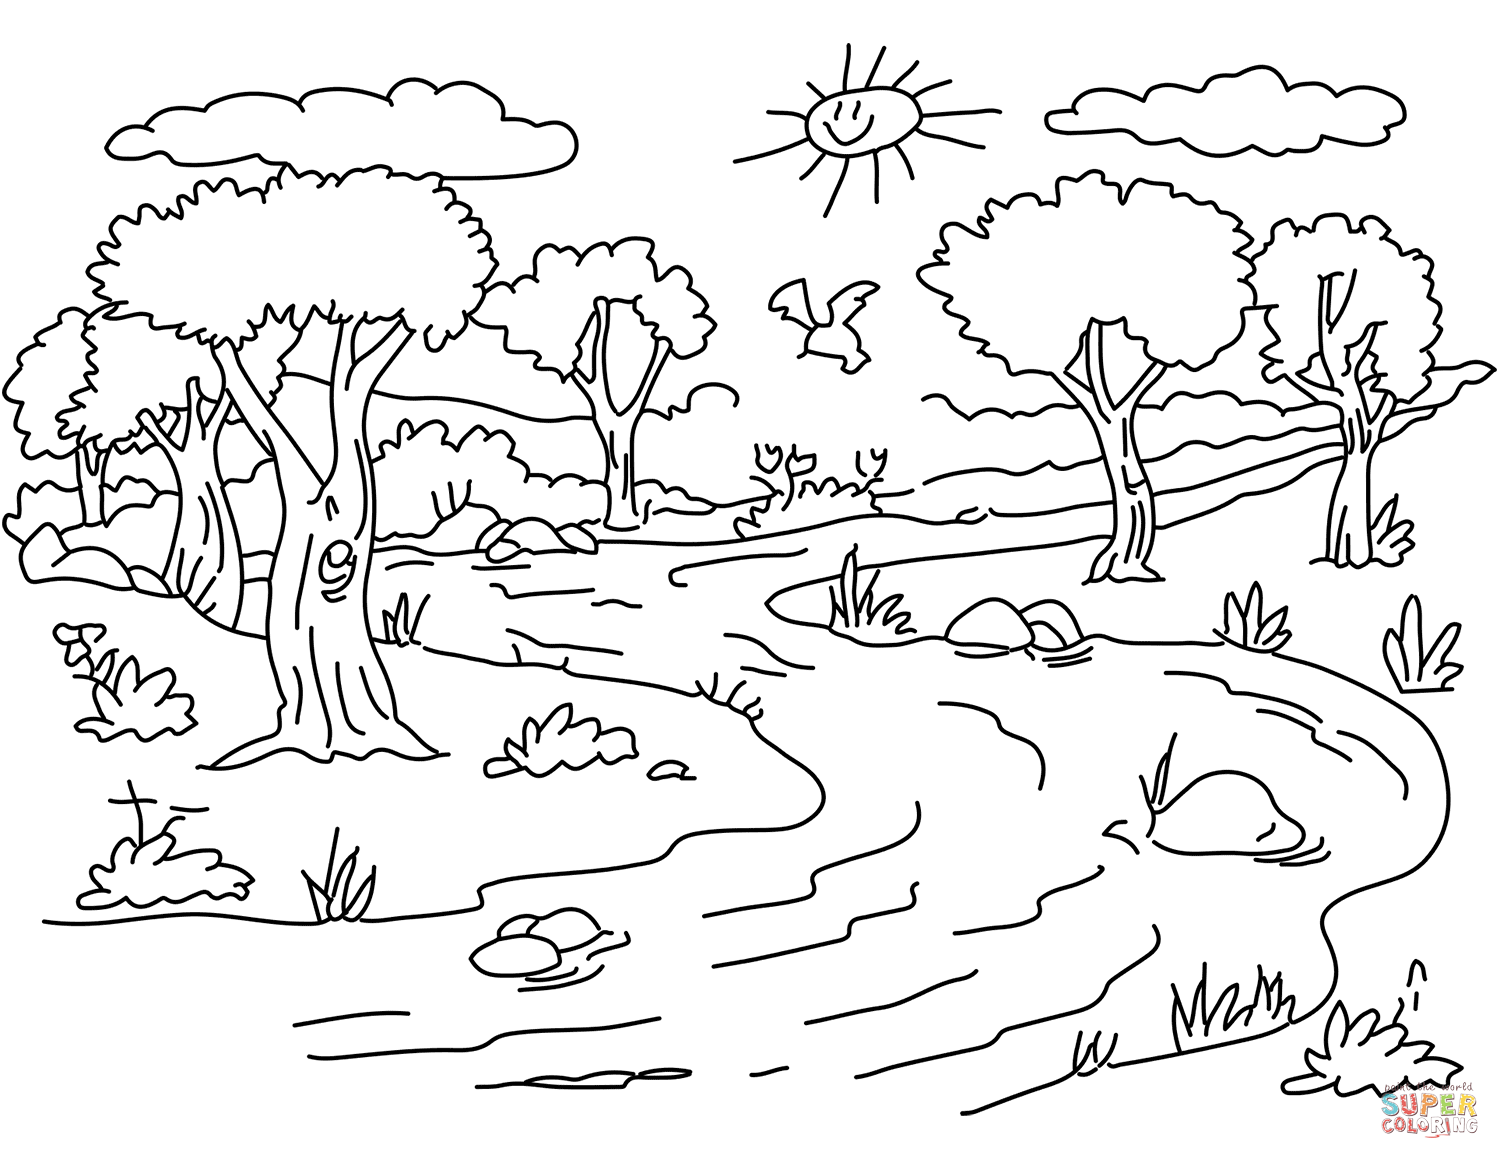 Simple River Drawing At Getdrawings